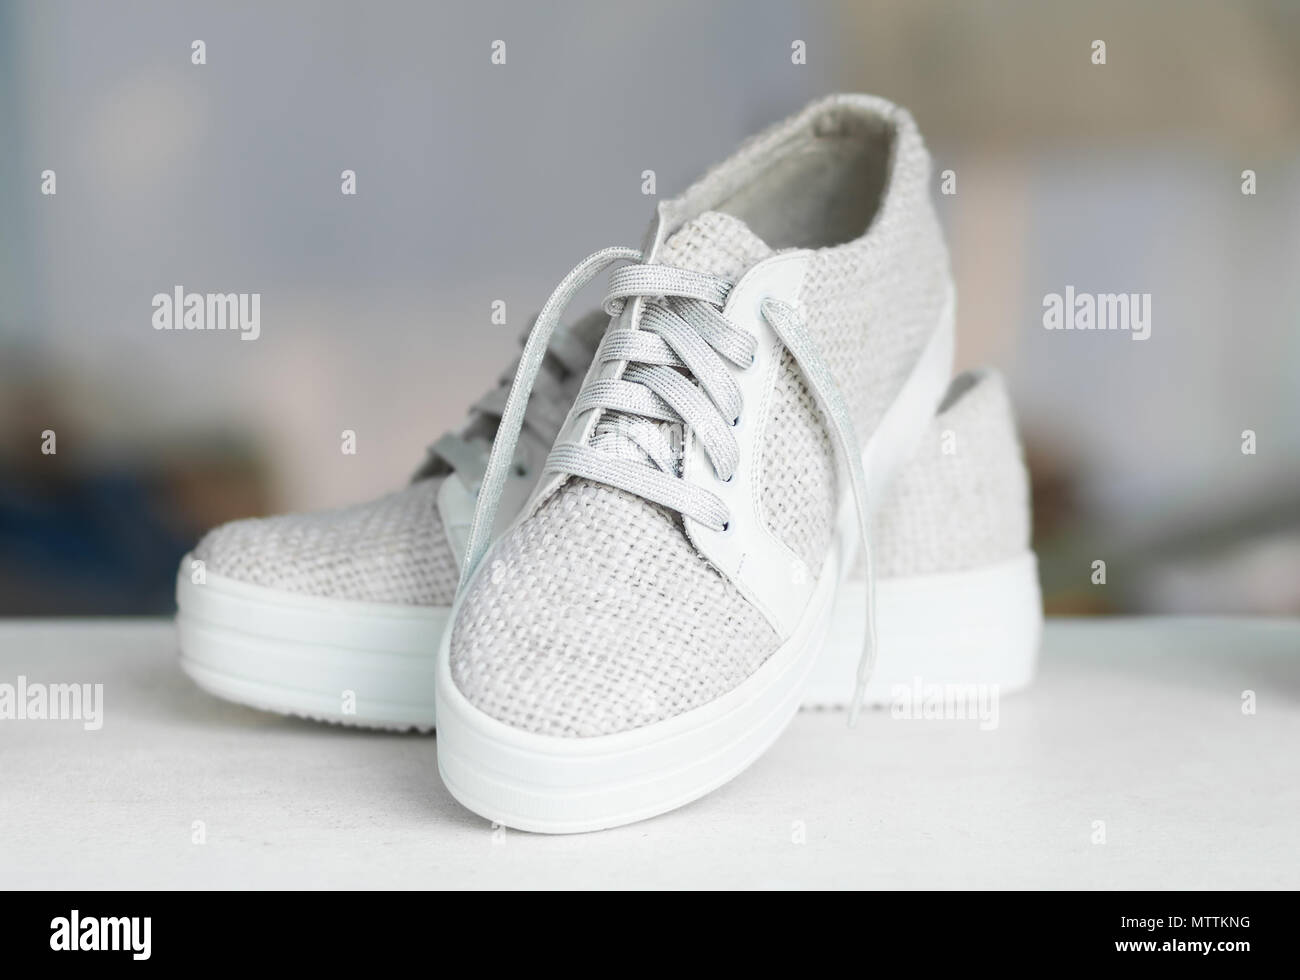 Handcrafted fashion shoes on blurry background - Stock Image